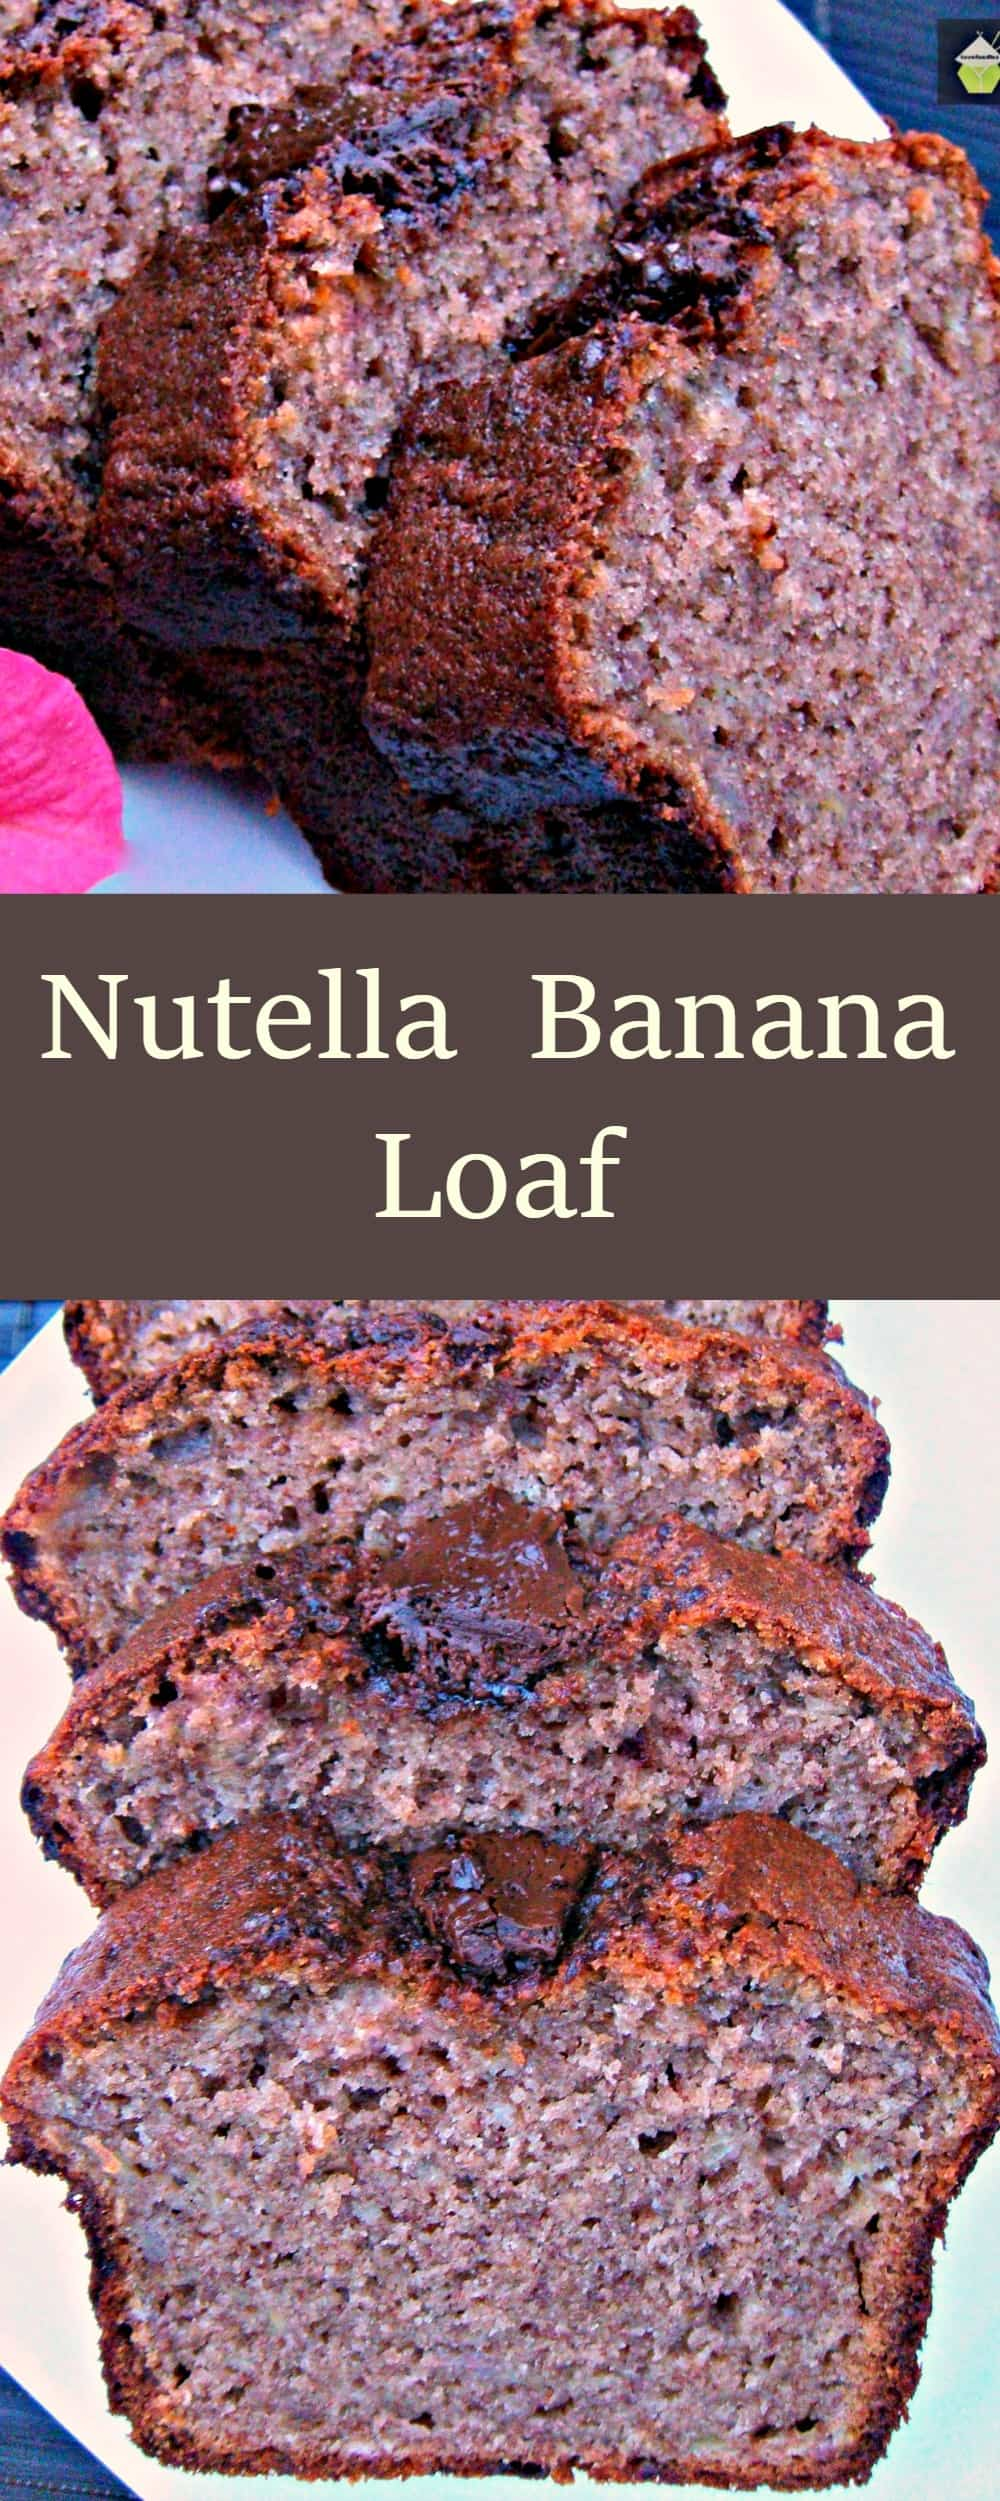 Nutella Banana Loaf. Delicious, soft pound cake with banana and Nutella chocolate. Easy recipe and very popular. Great tasting cake